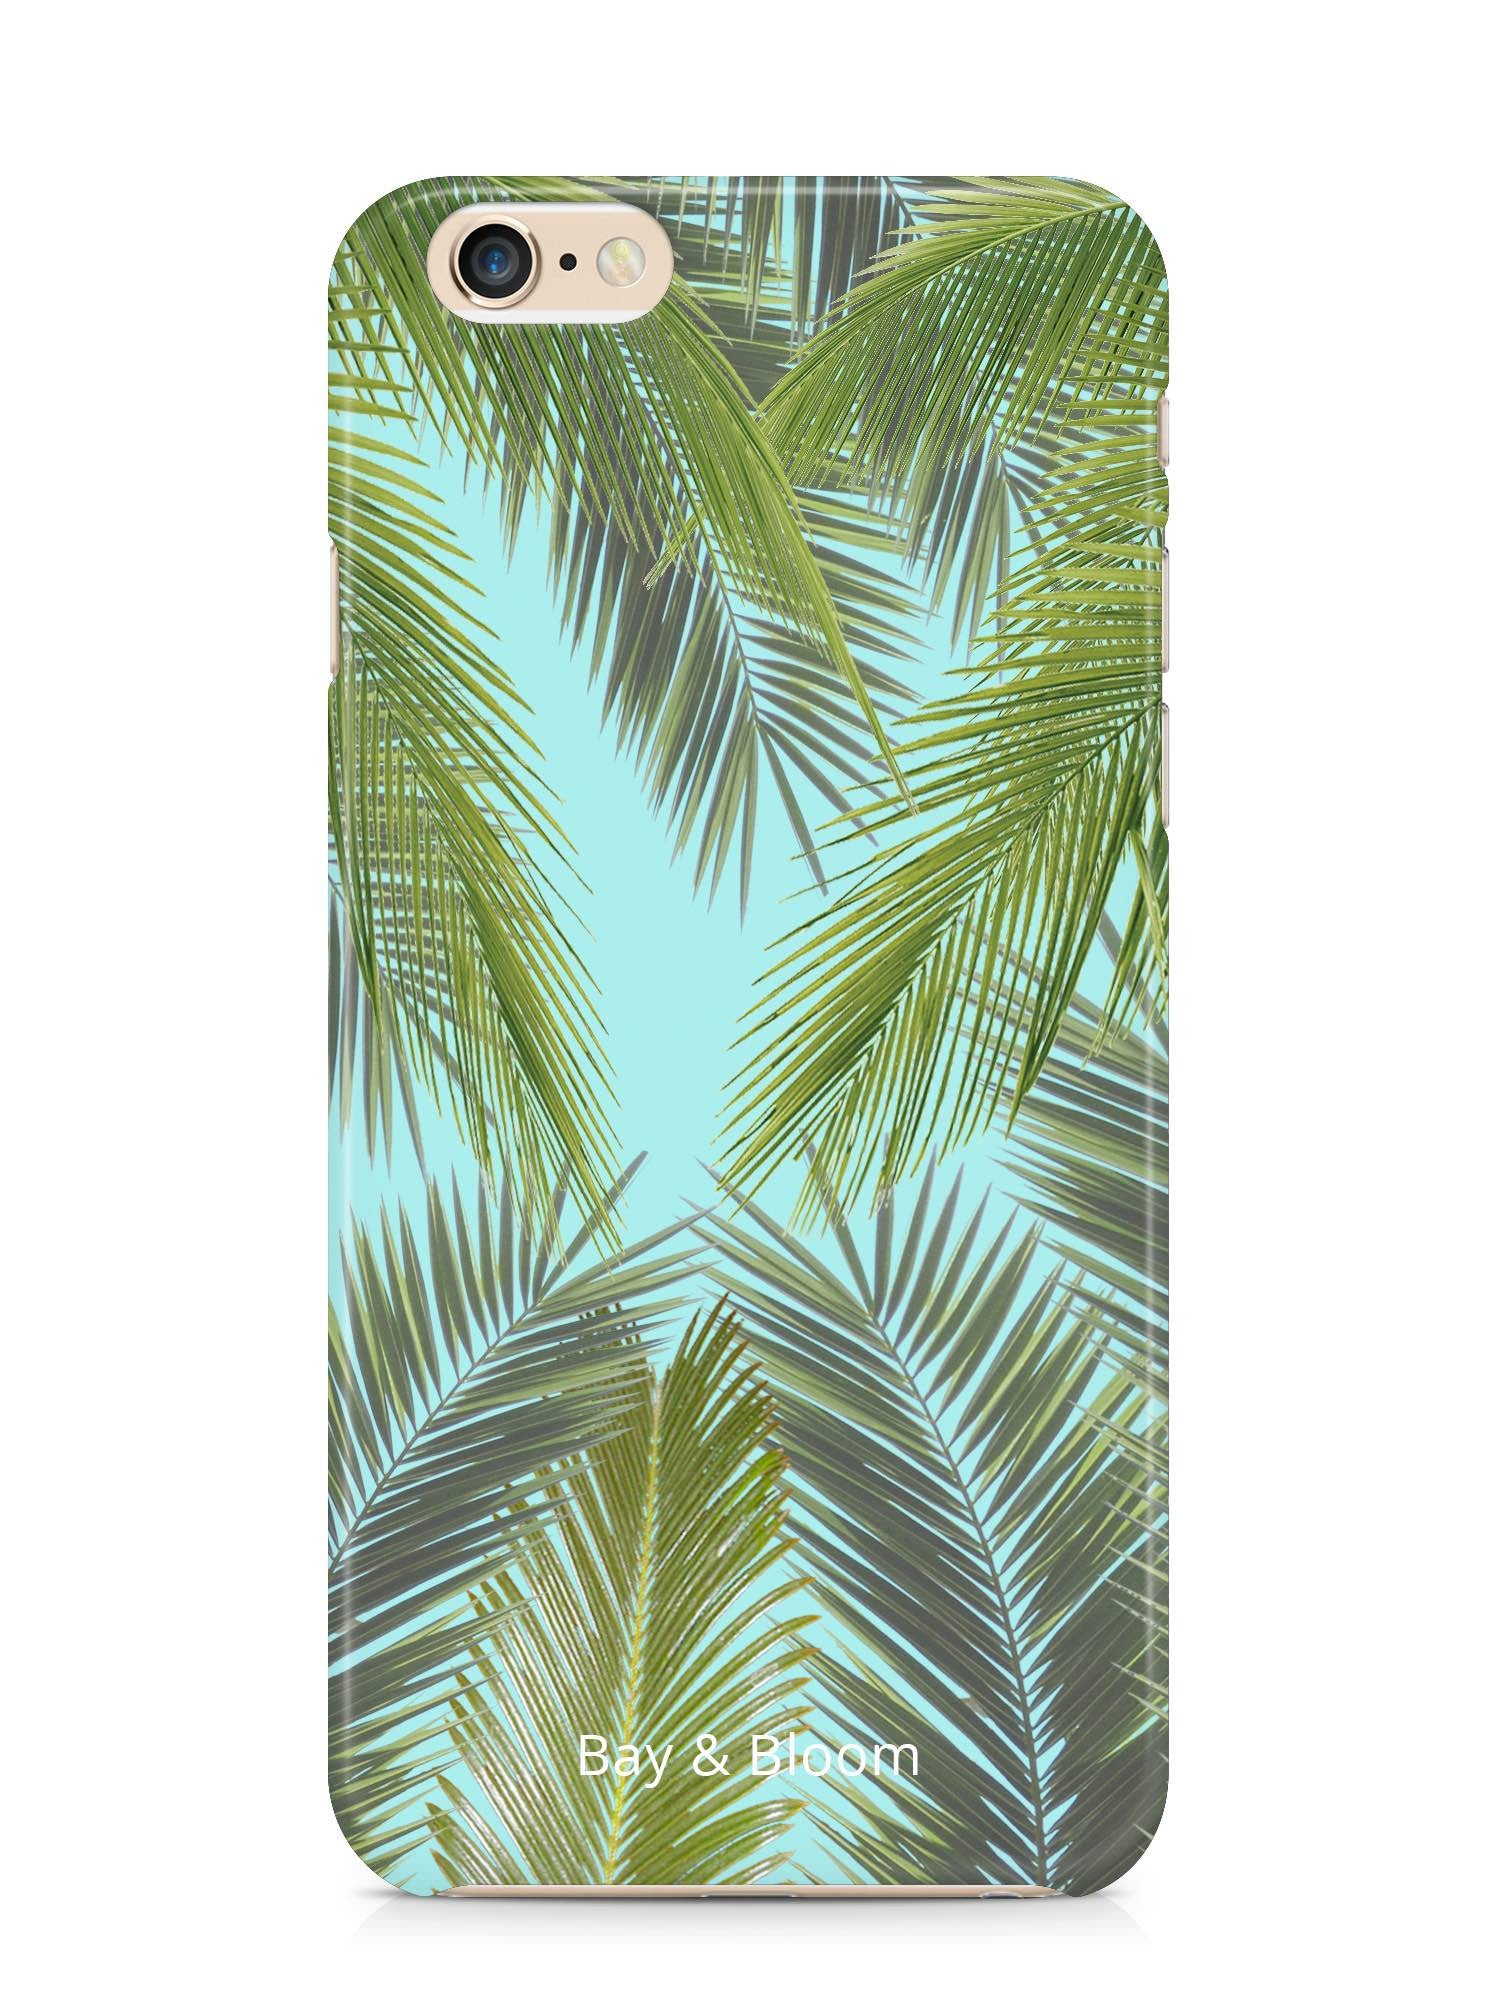 Bay & Bloom iPhone cover - Blue Leaves (iPhone 5 & 6) - Luxedy